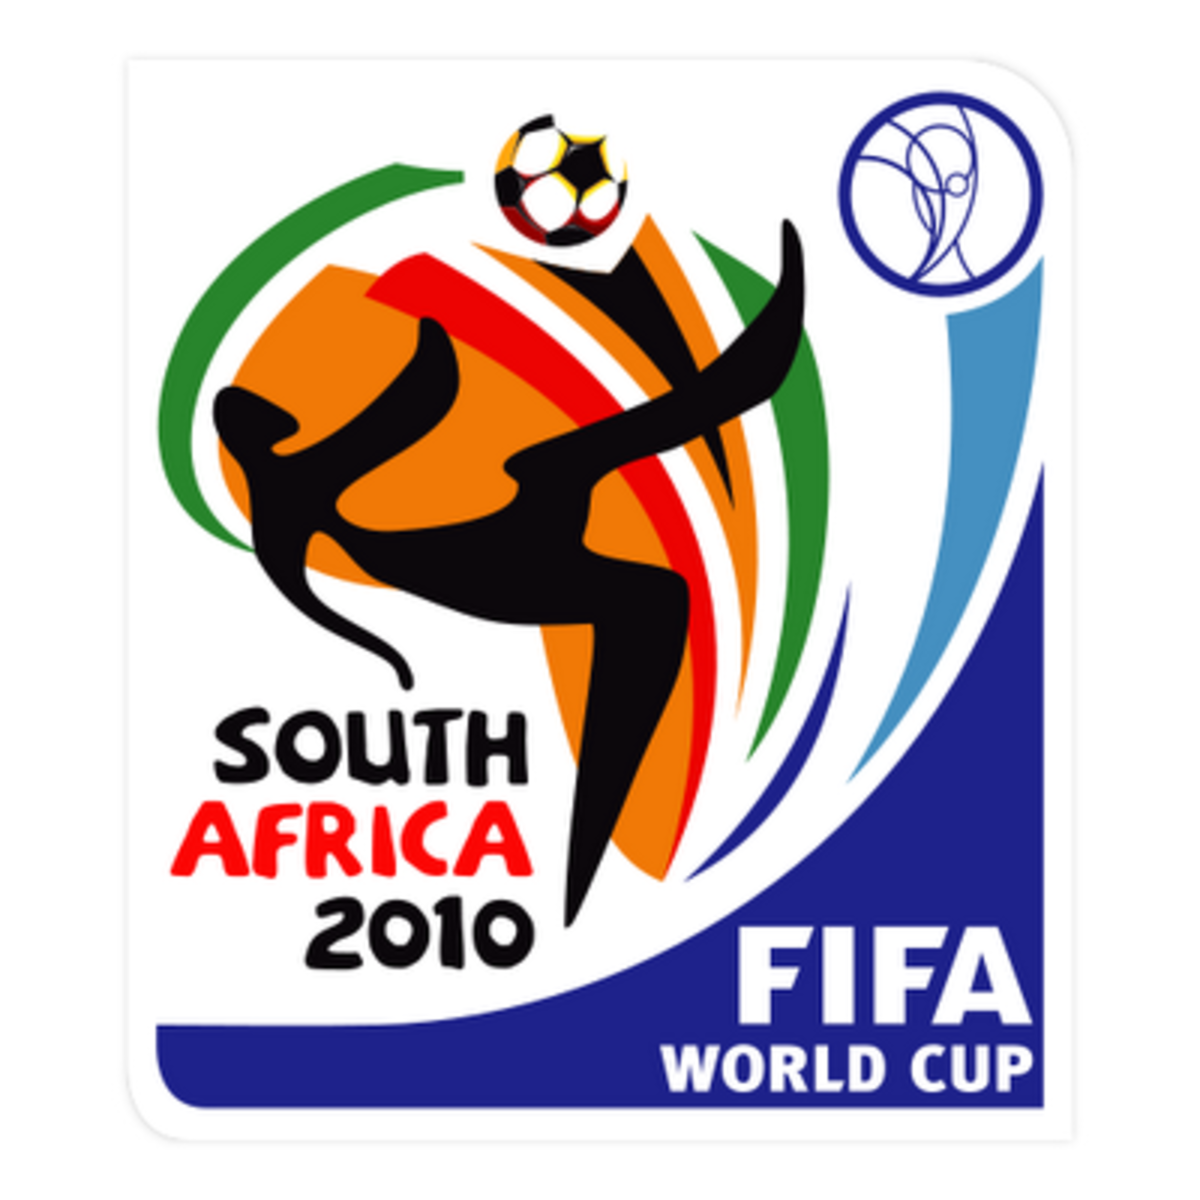 The world cup (FIFA) was held in South Africa and competitors from around the world struggled to gain the world cup. The FIFA event followed close on the heels of the 2010 Winter Olympics.